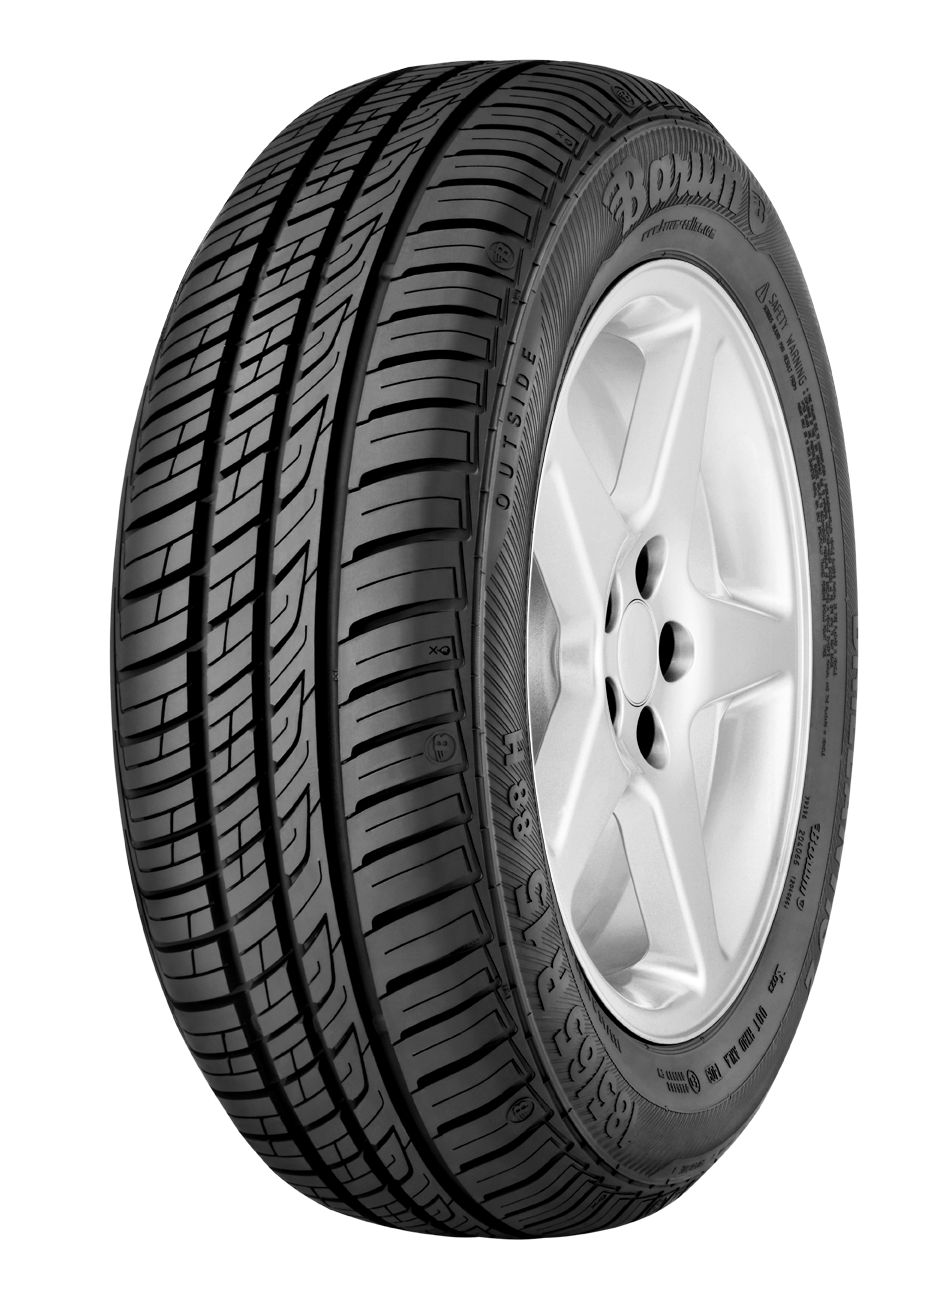 Anvelopa vara BARUM BRILLANTIS 2 195/65 R15 91H